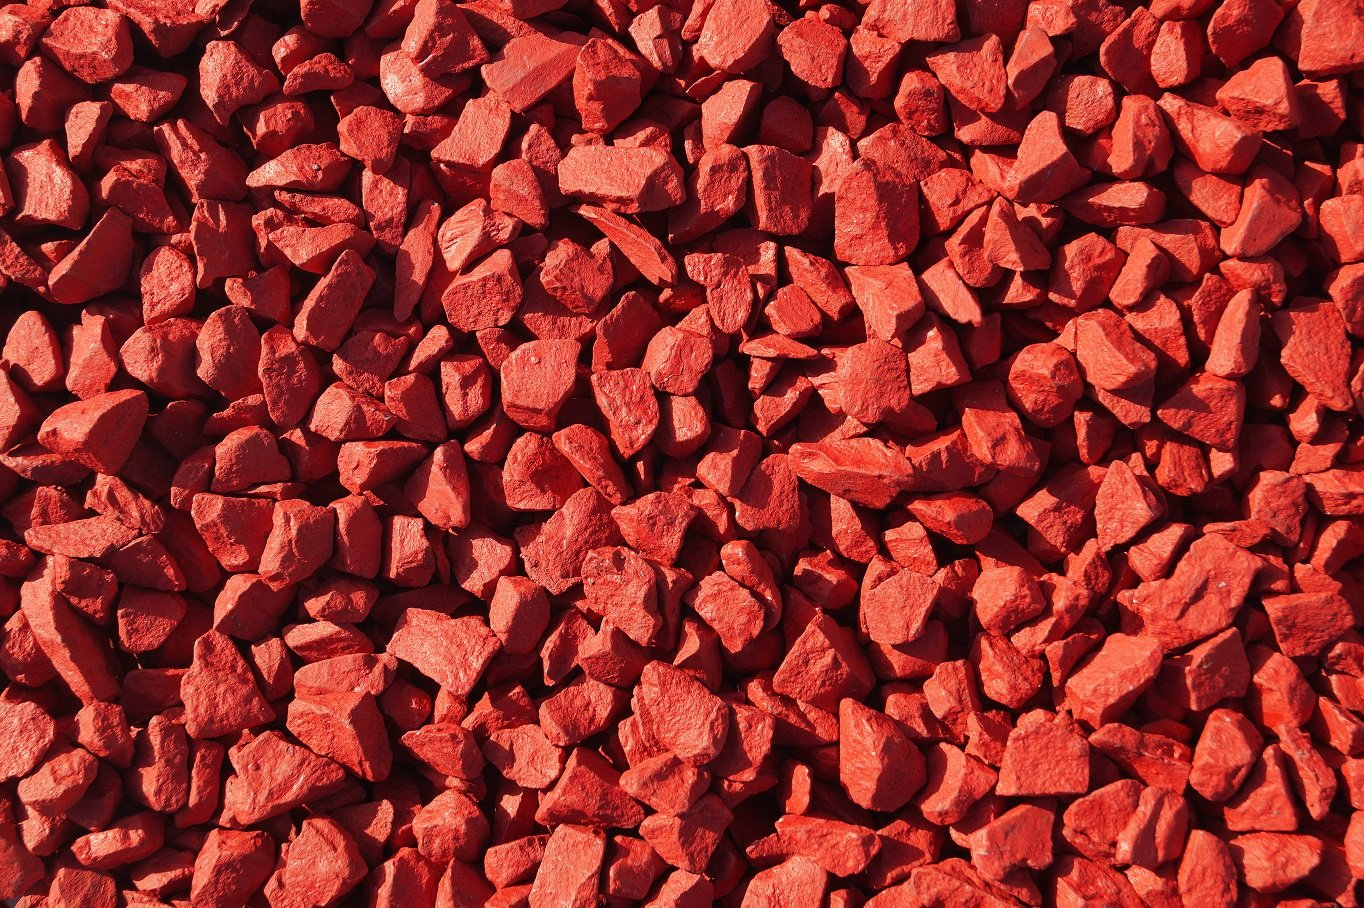 RockinColour Chilli Red Large Pack decorative garden stone